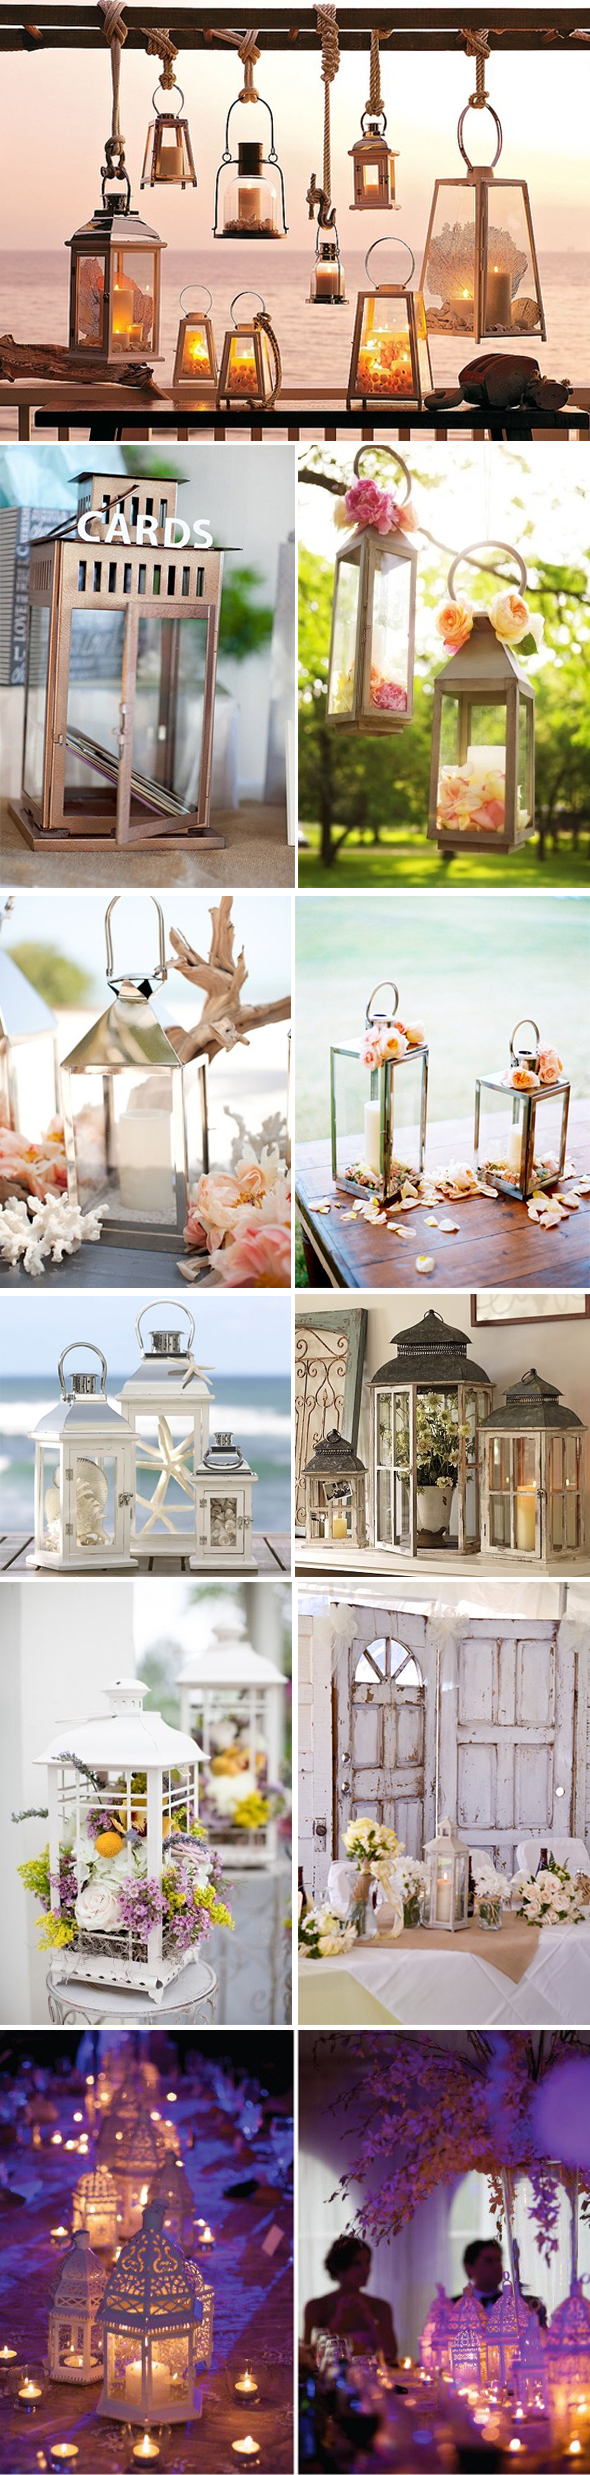 lantern wedding ideas 8 Great Lantern Ideas for Your Wedding